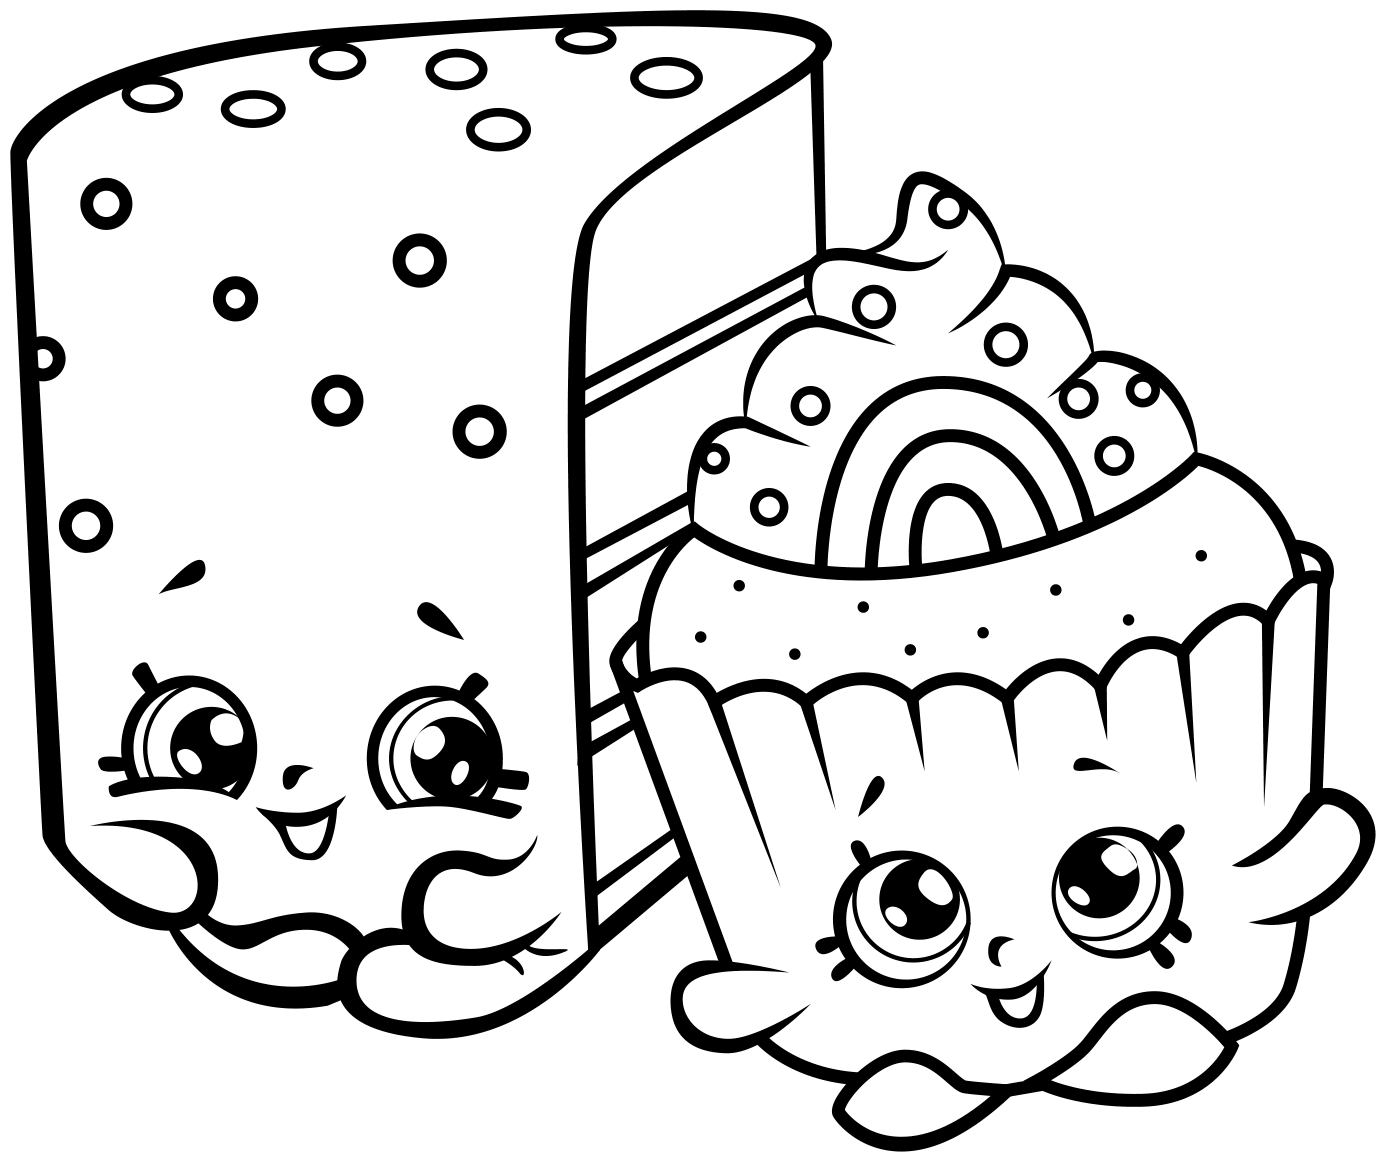 graphic about Shopkins Coloring Pages Printable identified as Shopkins Coloring Internet pages - Most straightforward Coloring Webpages For Little ones